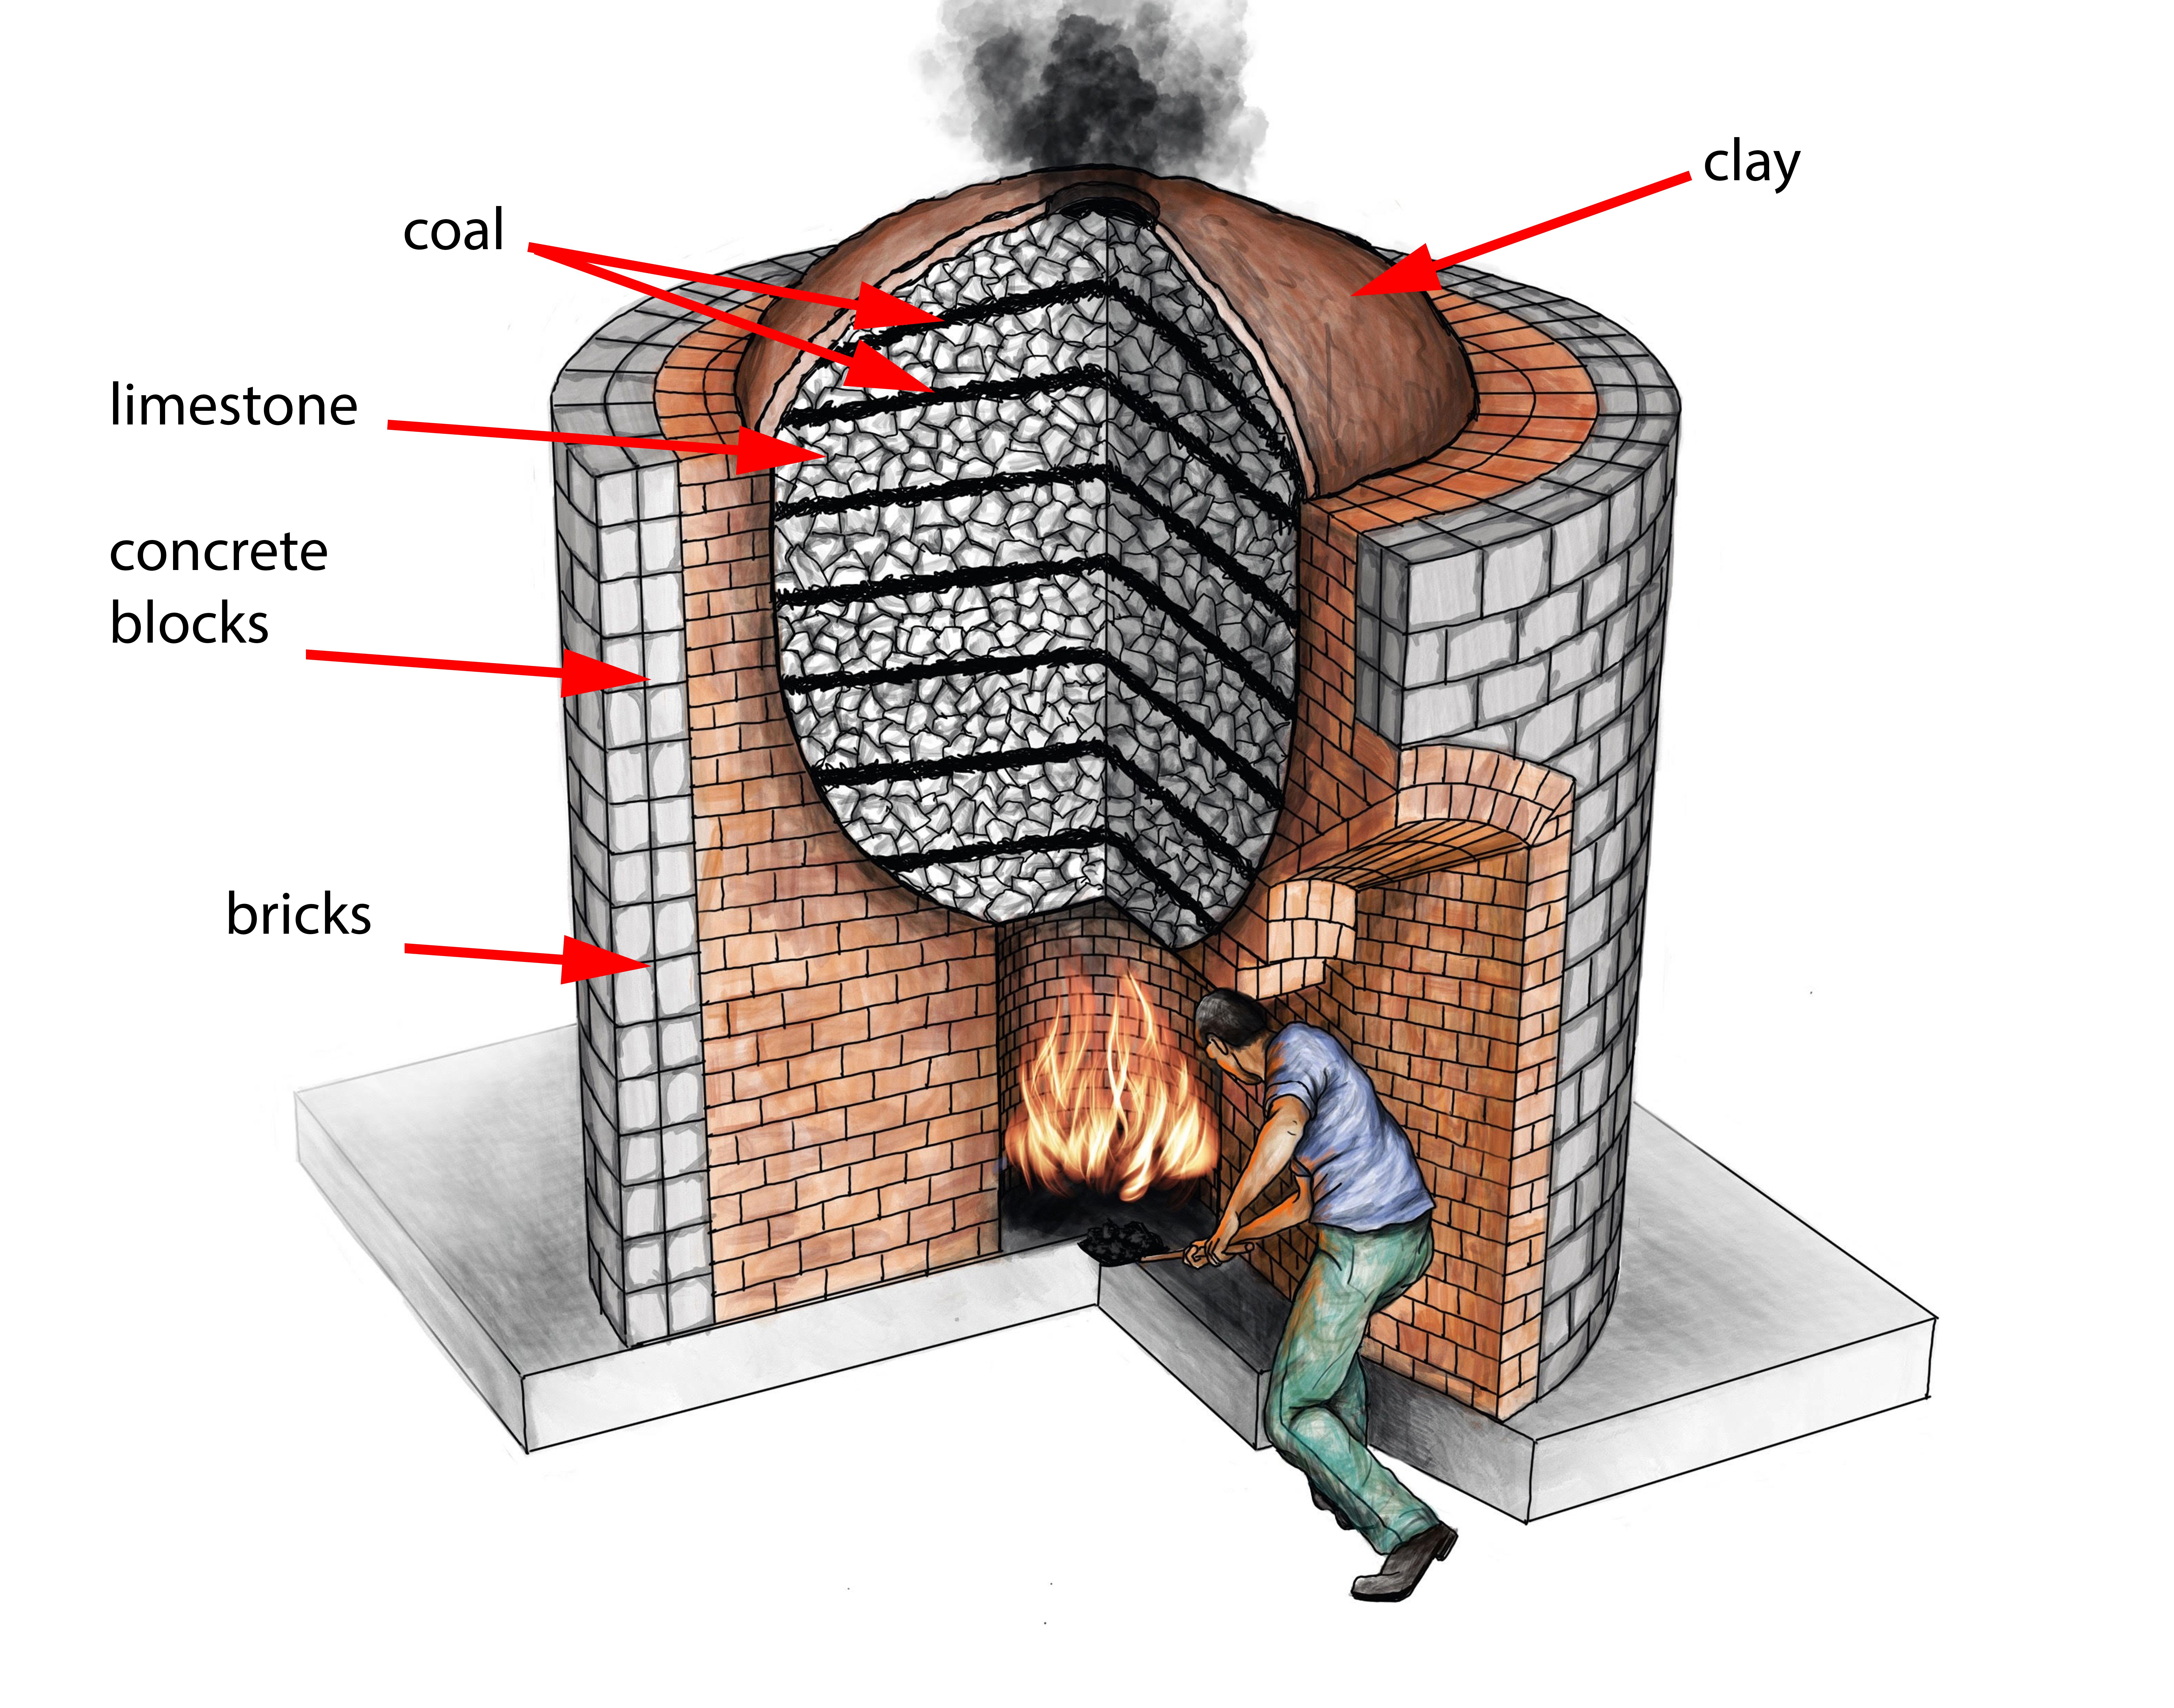 lime kiln diagram with labels by M Jaen